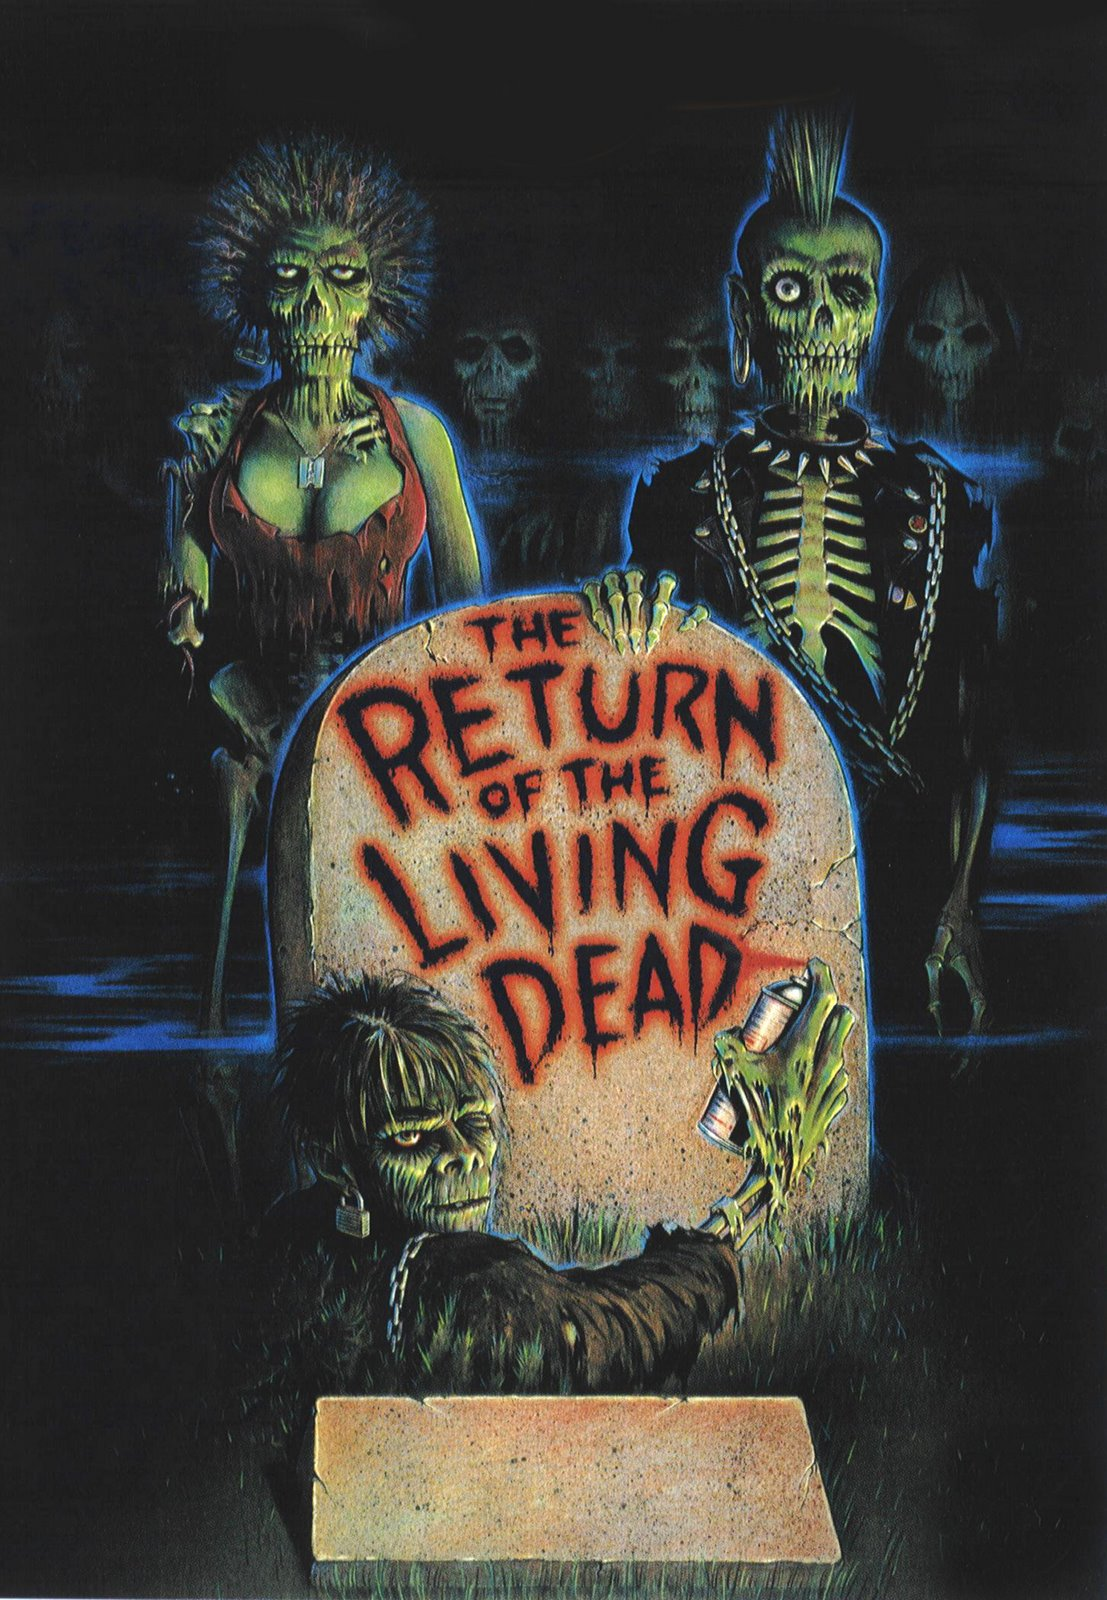 The Return of the Living Dead (1985)